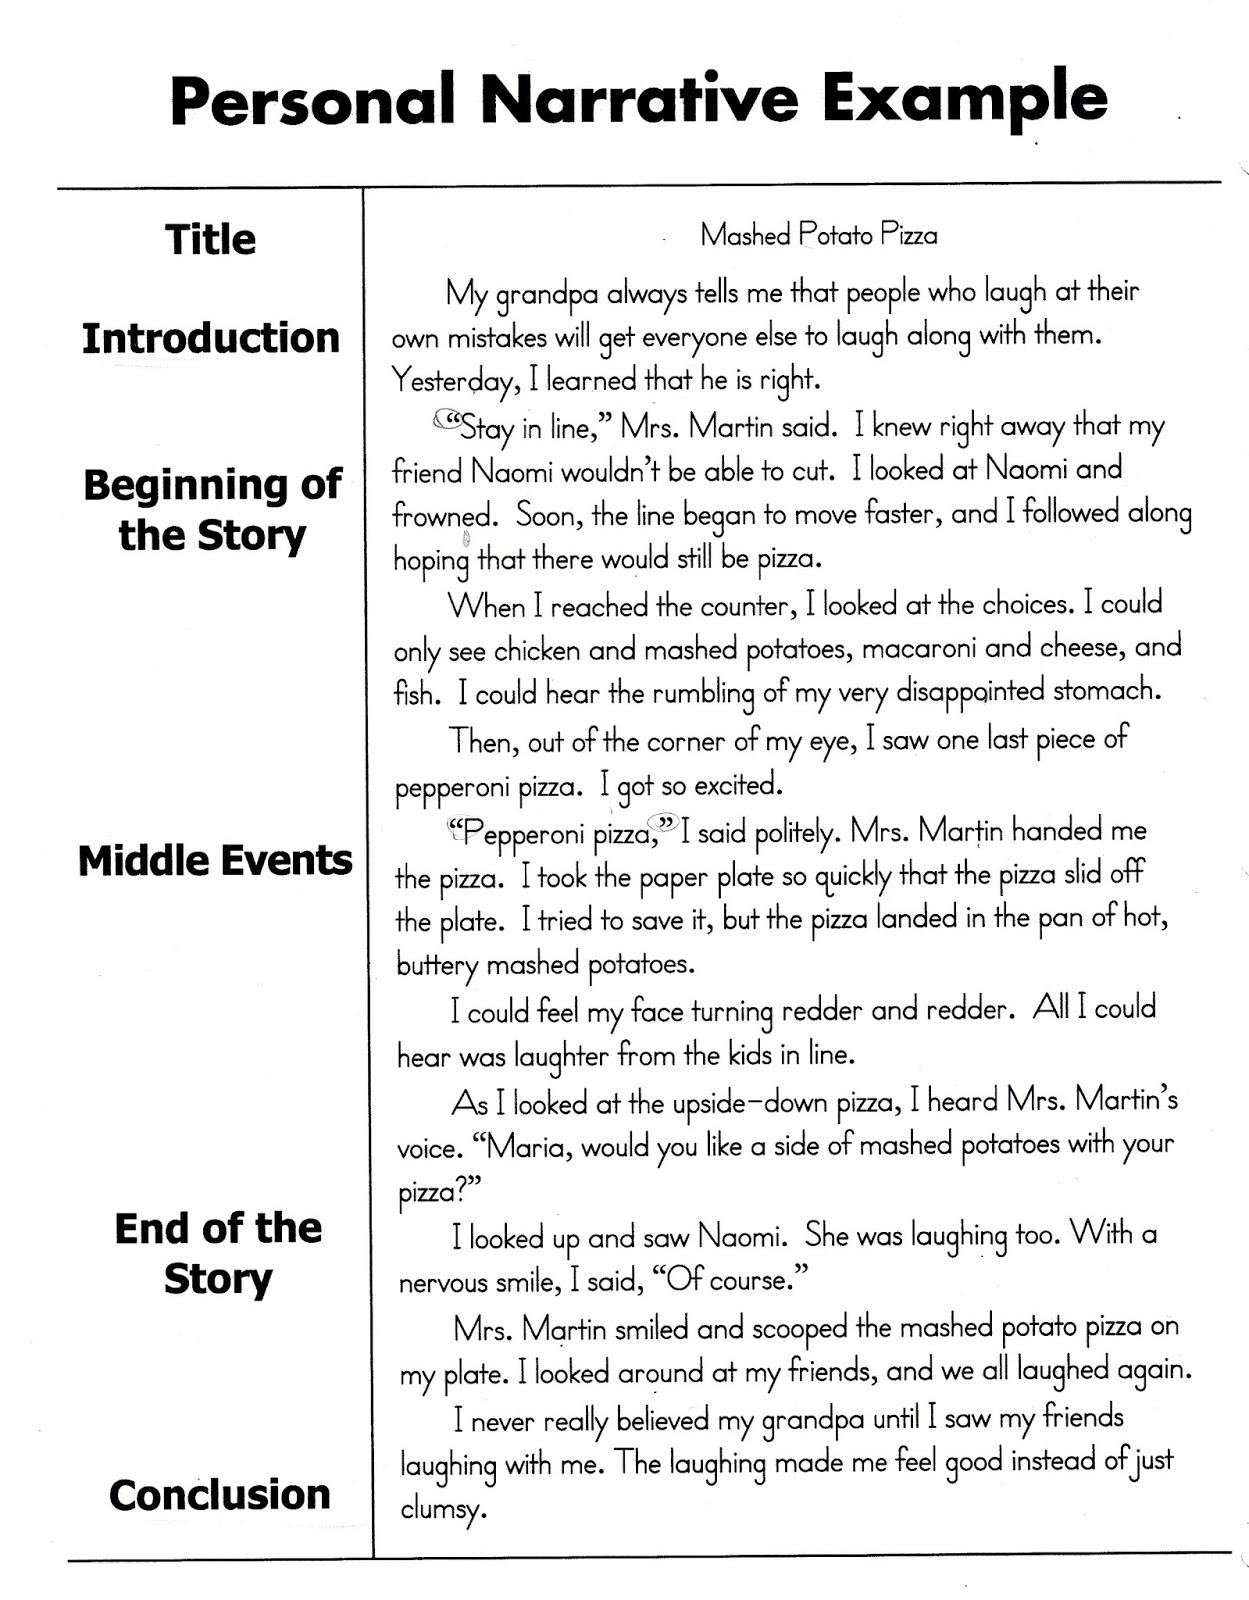 story of narrative essay The story of my life by helen keller essay 643 words | 3 pages the story of my life by helen keller inspiration the potency and inspiration of the less-than.